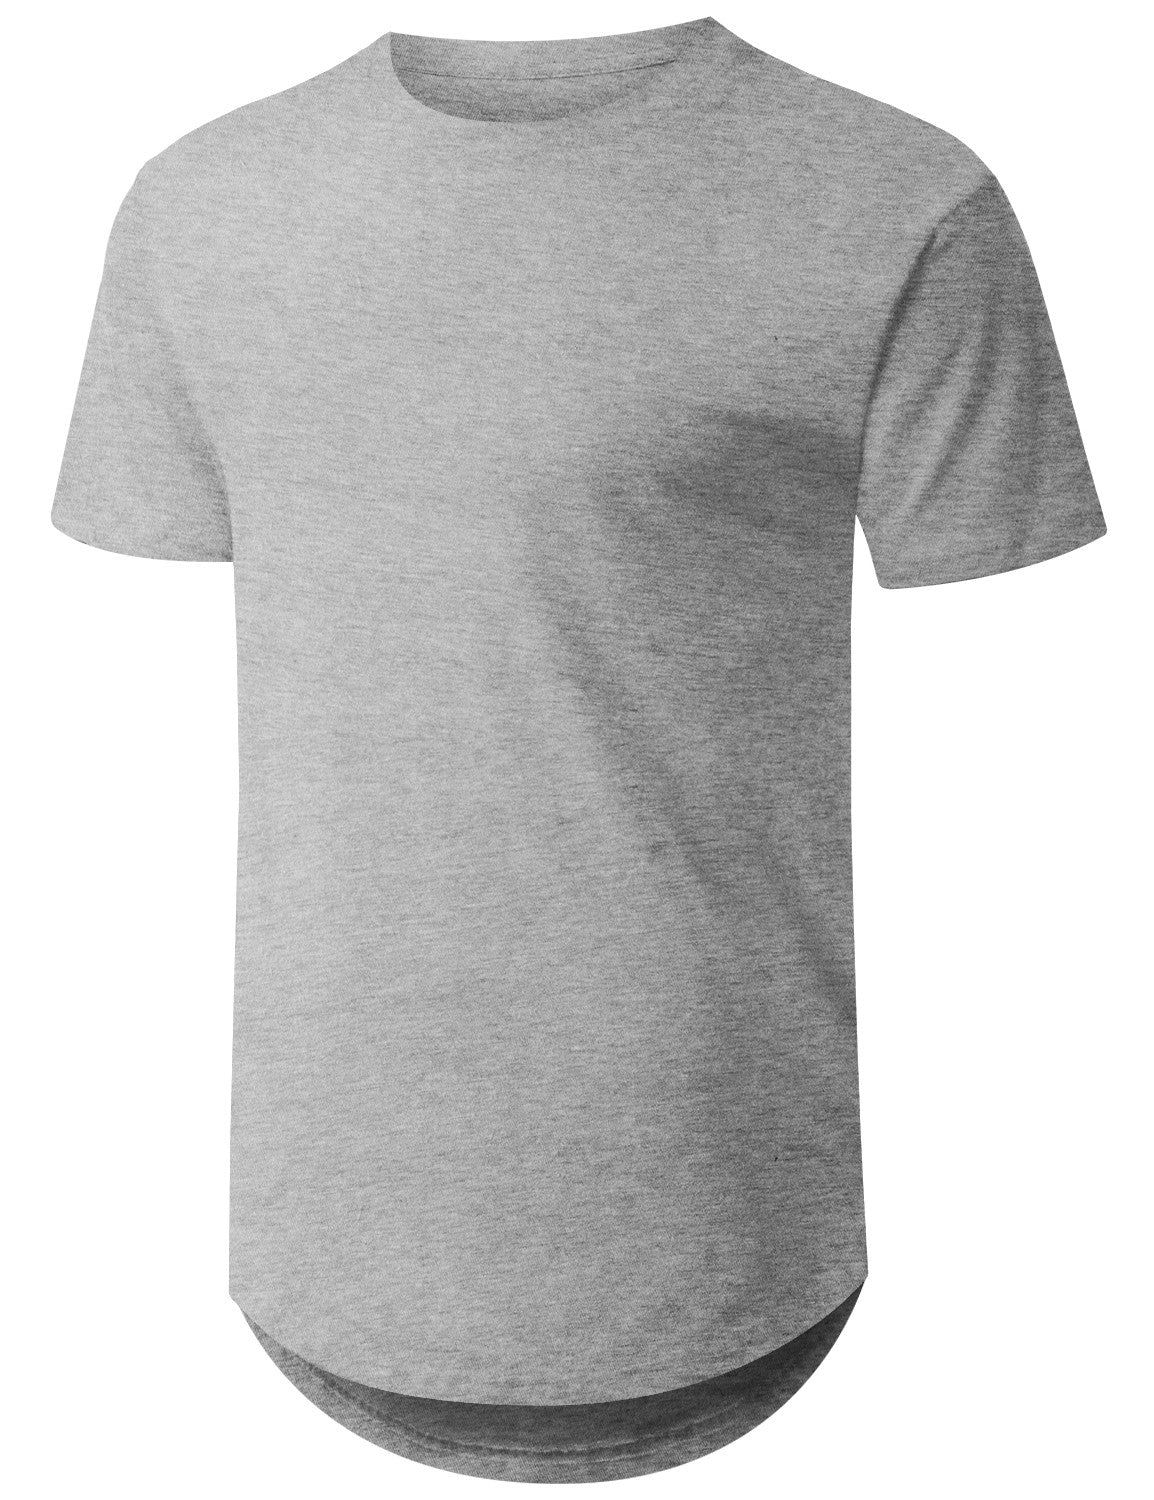 HGRAY Basic Solid Longline T-shirt - URBANCREWS